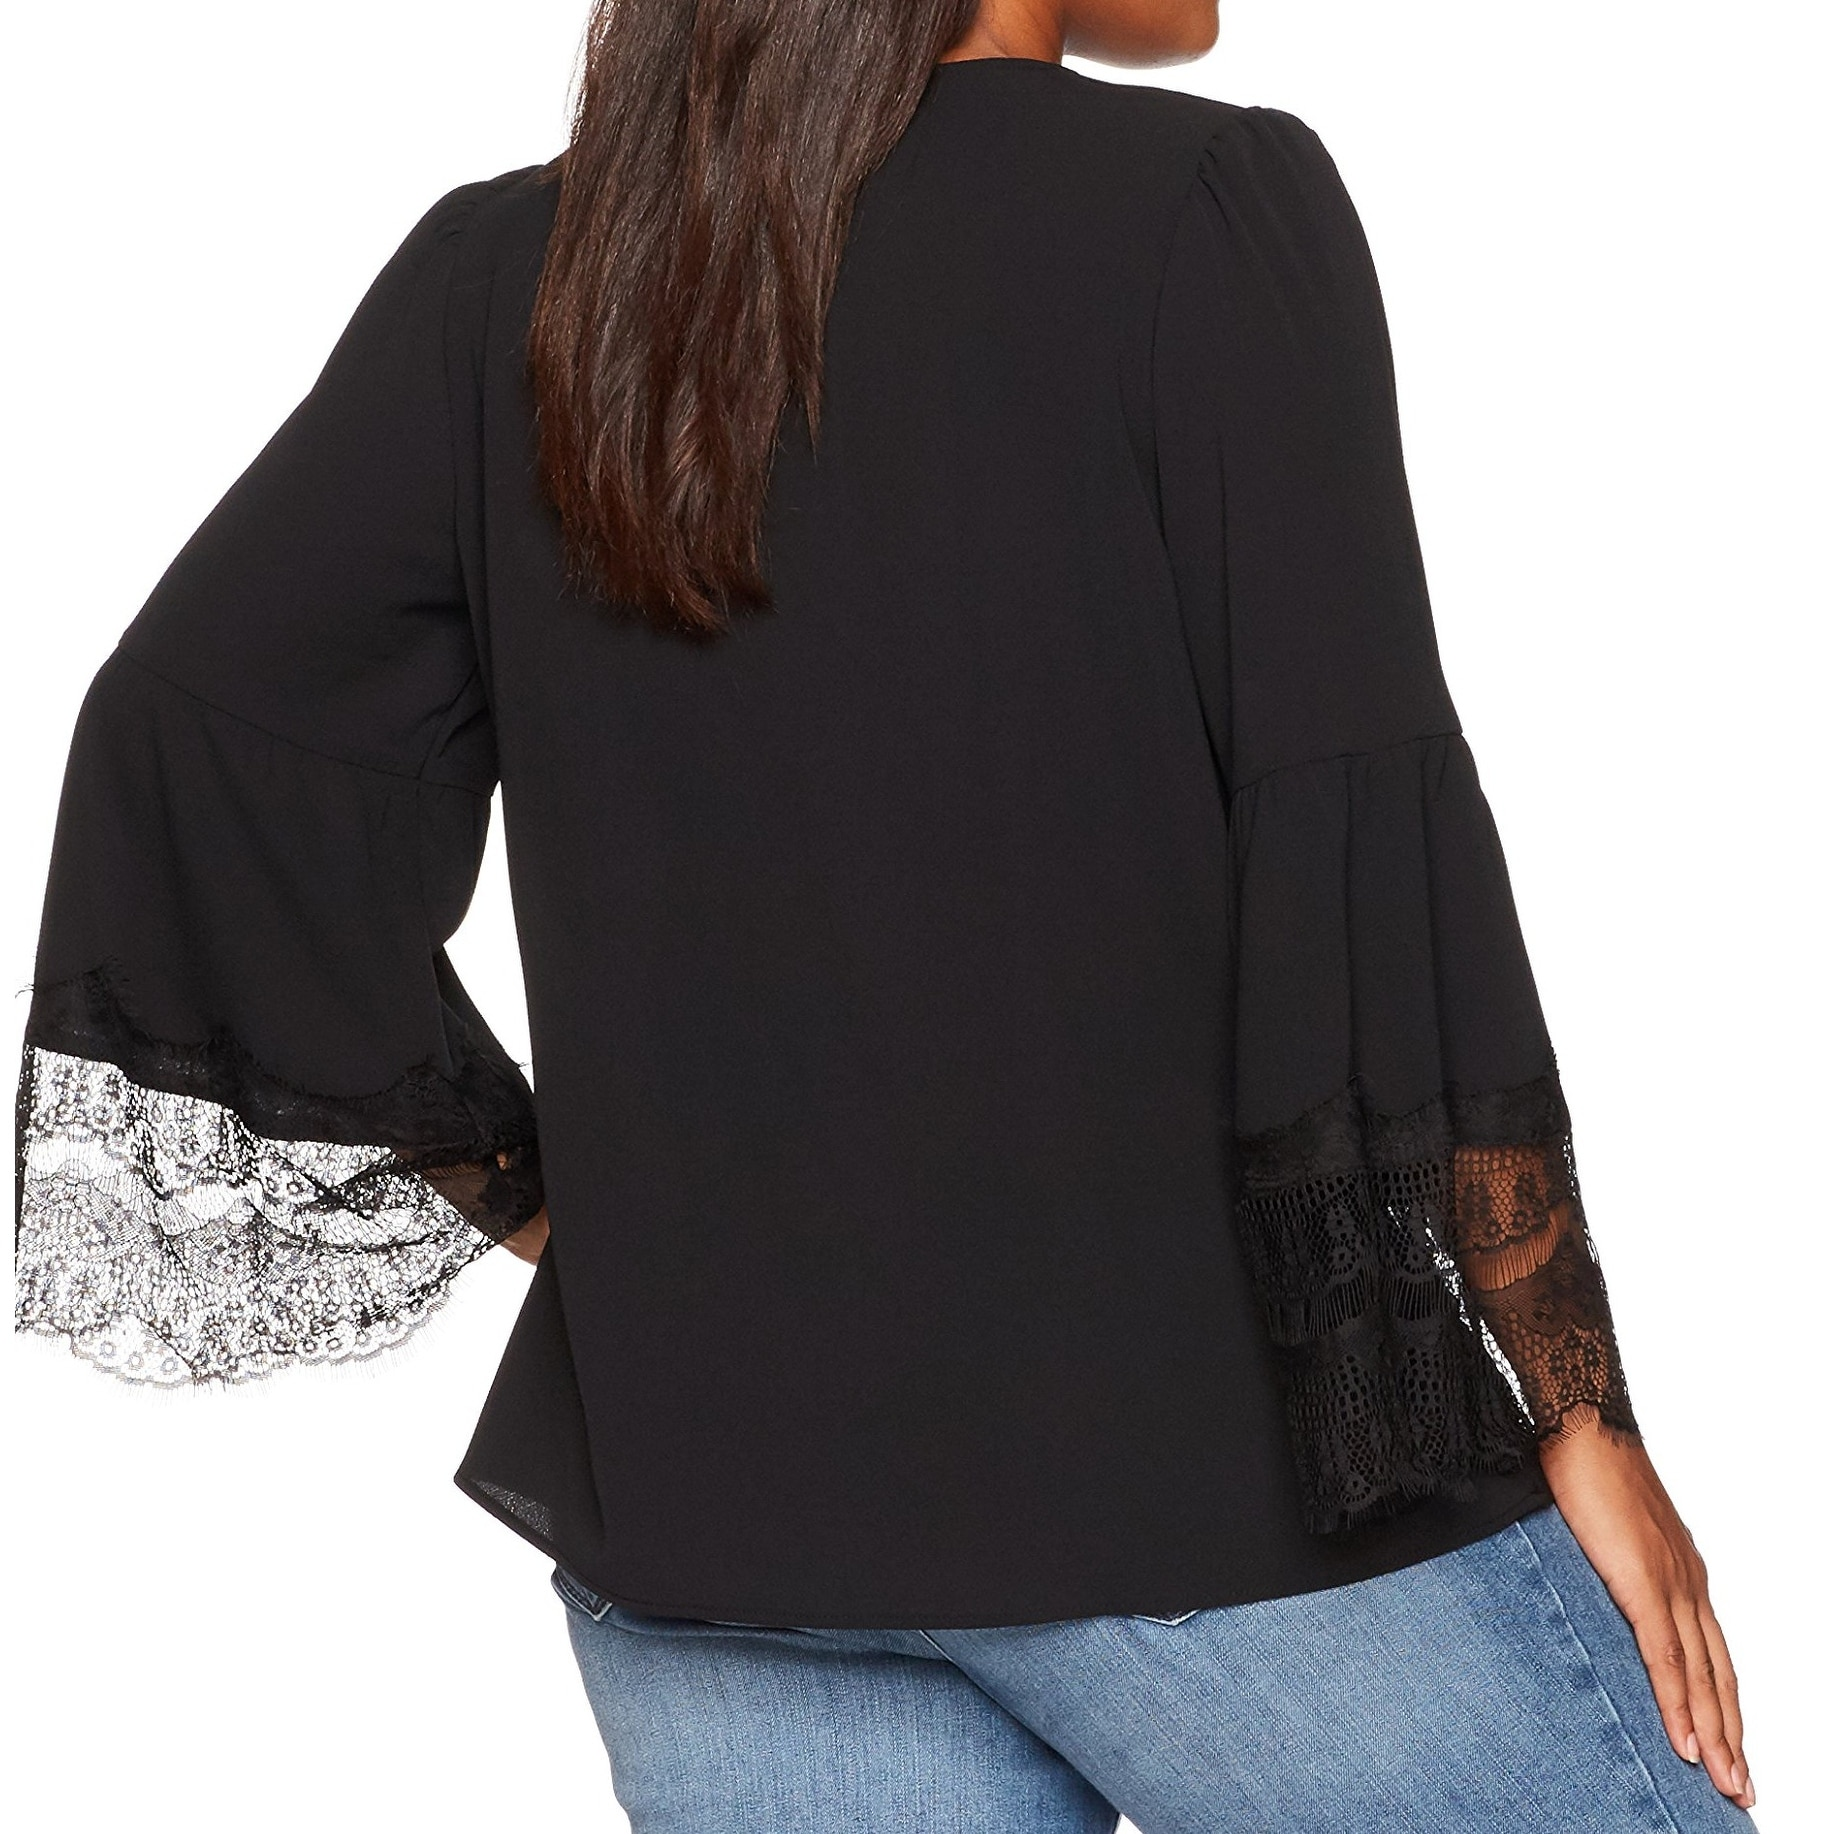 d81f14cf229988 Shop Nine West Black Women's Size 2X Plus Lace Bell Sleeve V-Neck Blouse -  On Sale - Free Shipping On Orders Over $45 - Overstock - 27194958